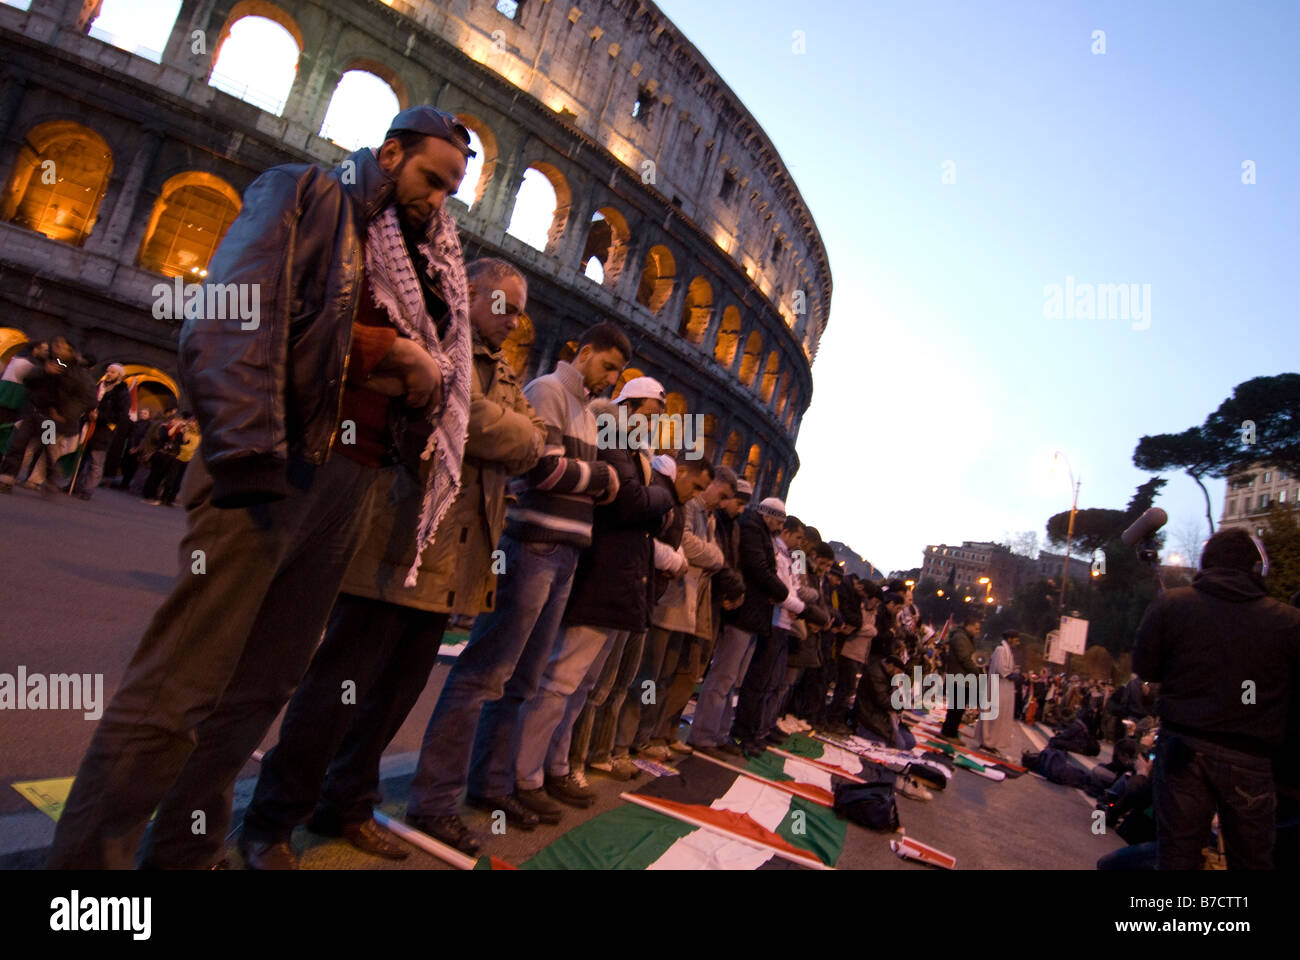 Palestinians pray during the demonstration against Israel  massacre of palestinian people in Gaza, Rome, Italy, - Stock Image